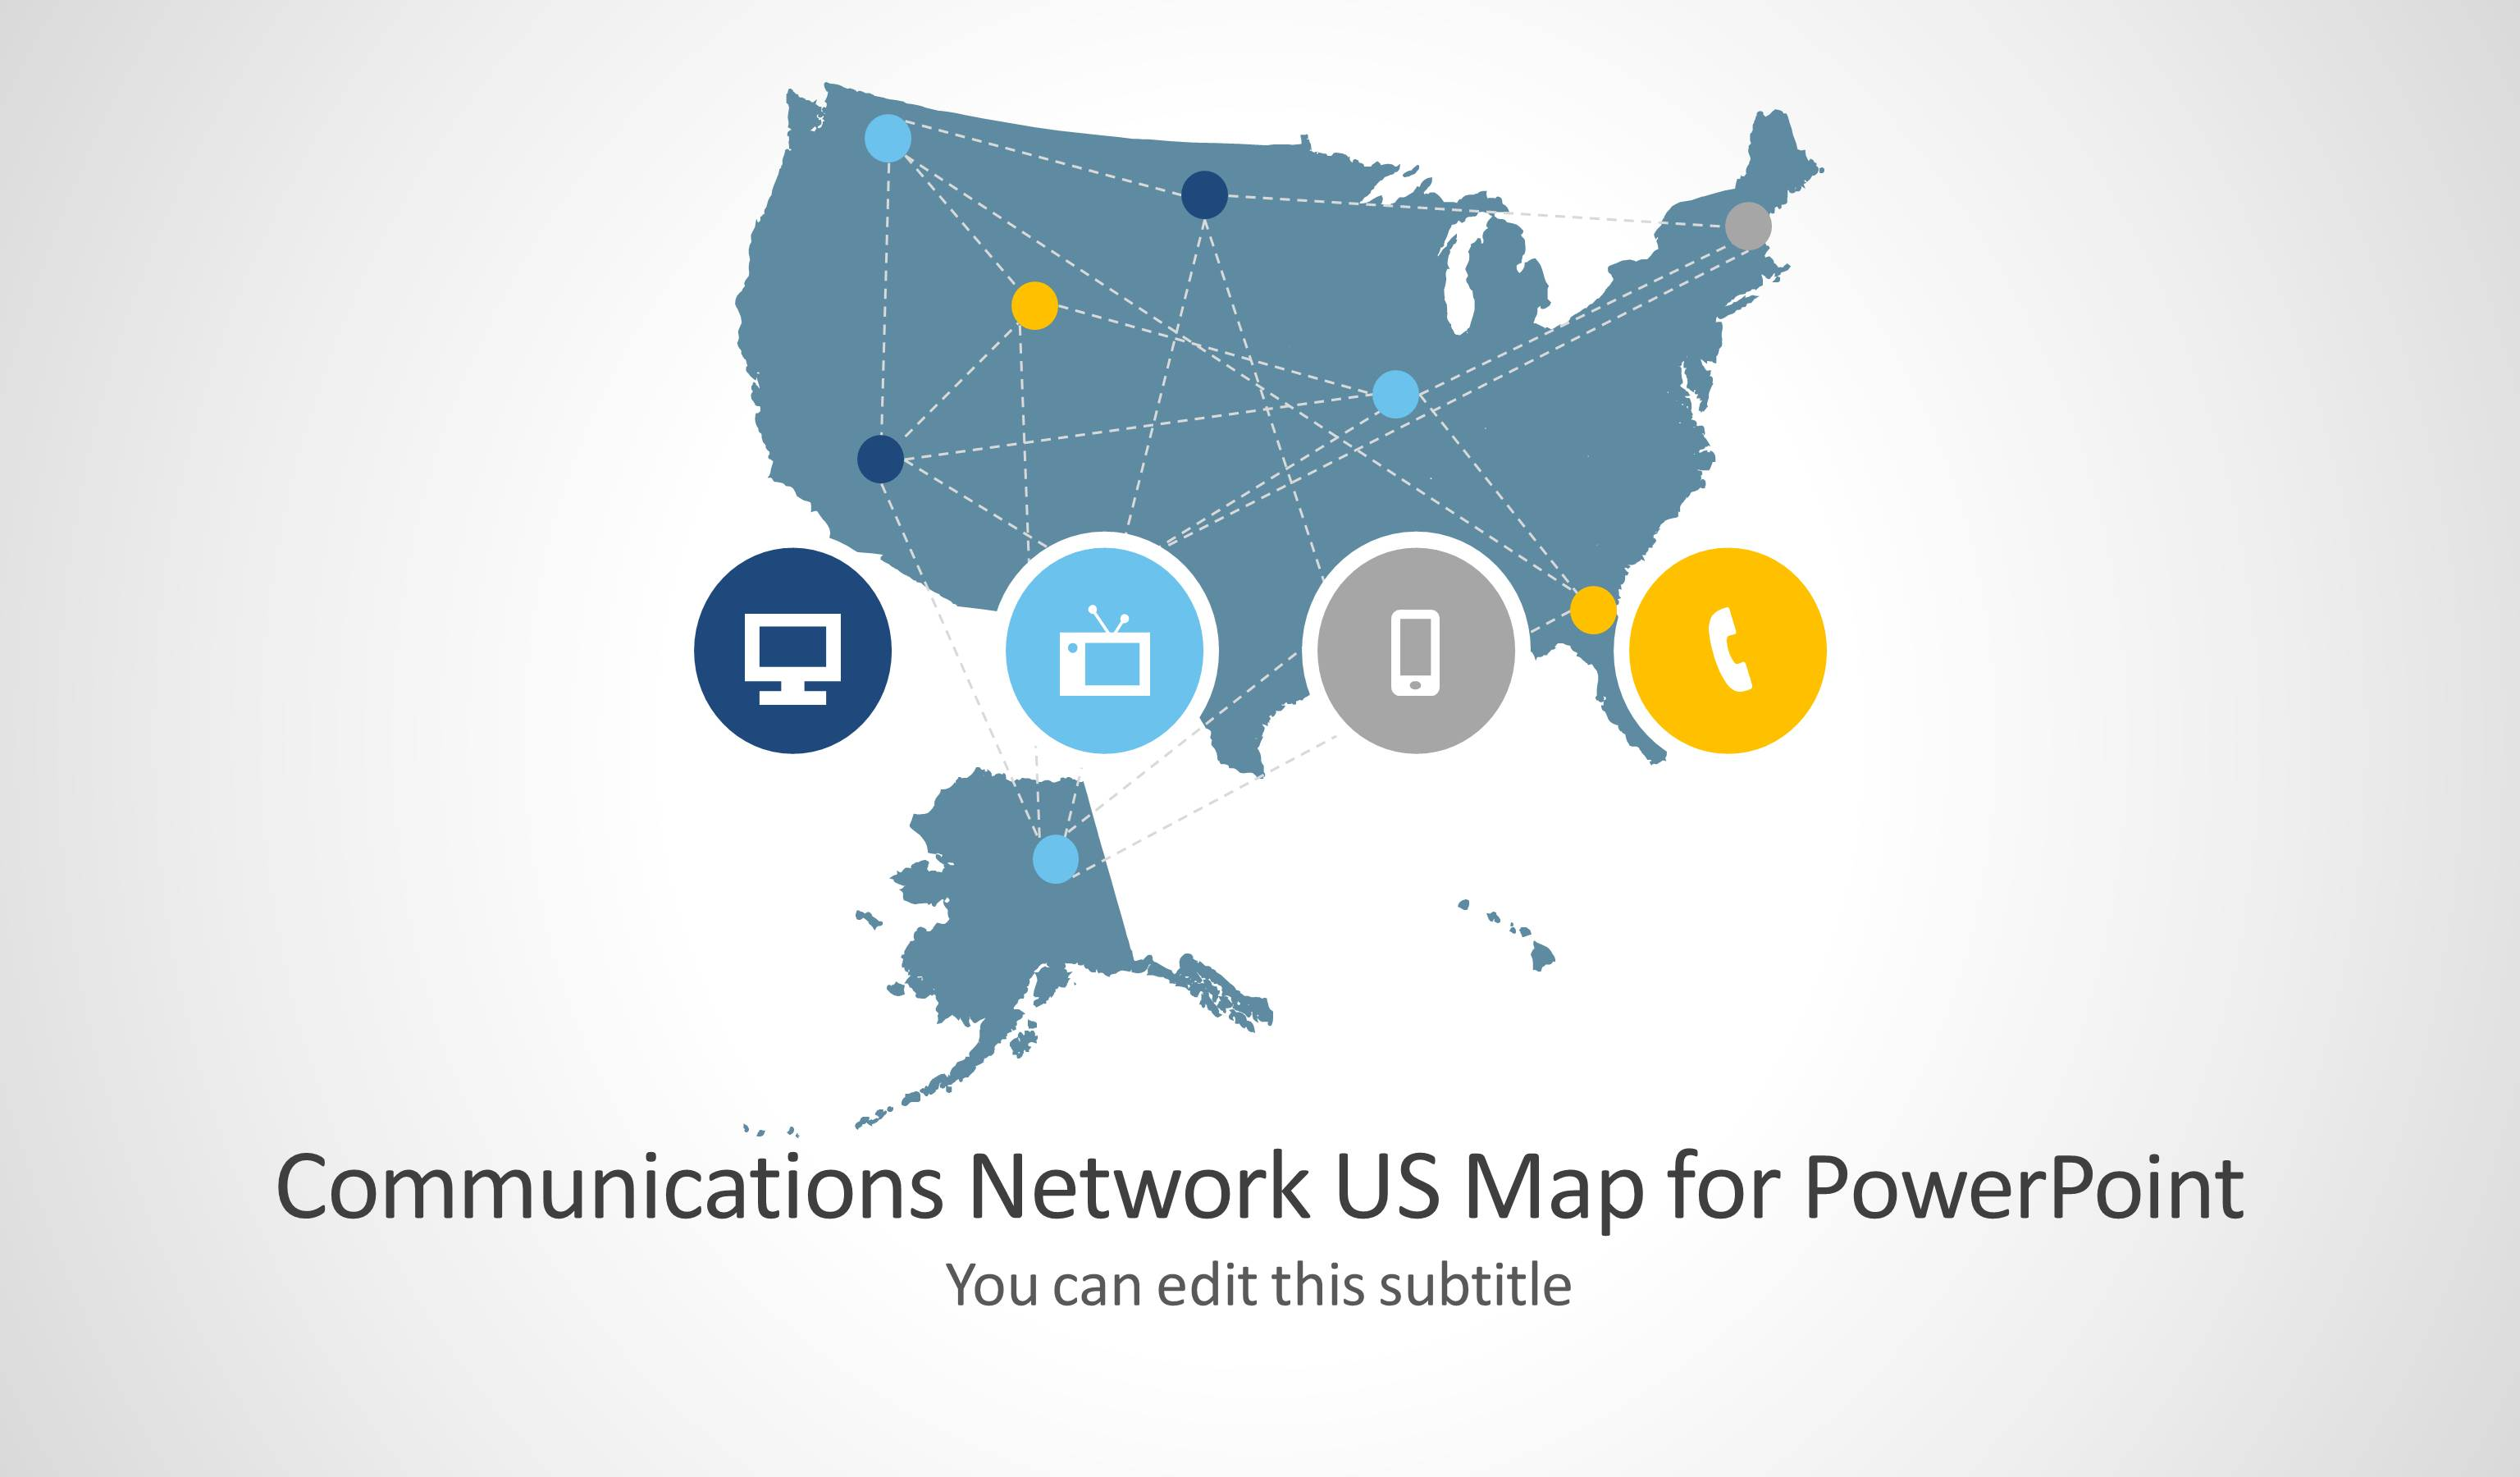 Communications Network Template With US Map For PowerPoint - Us map powerpoint template